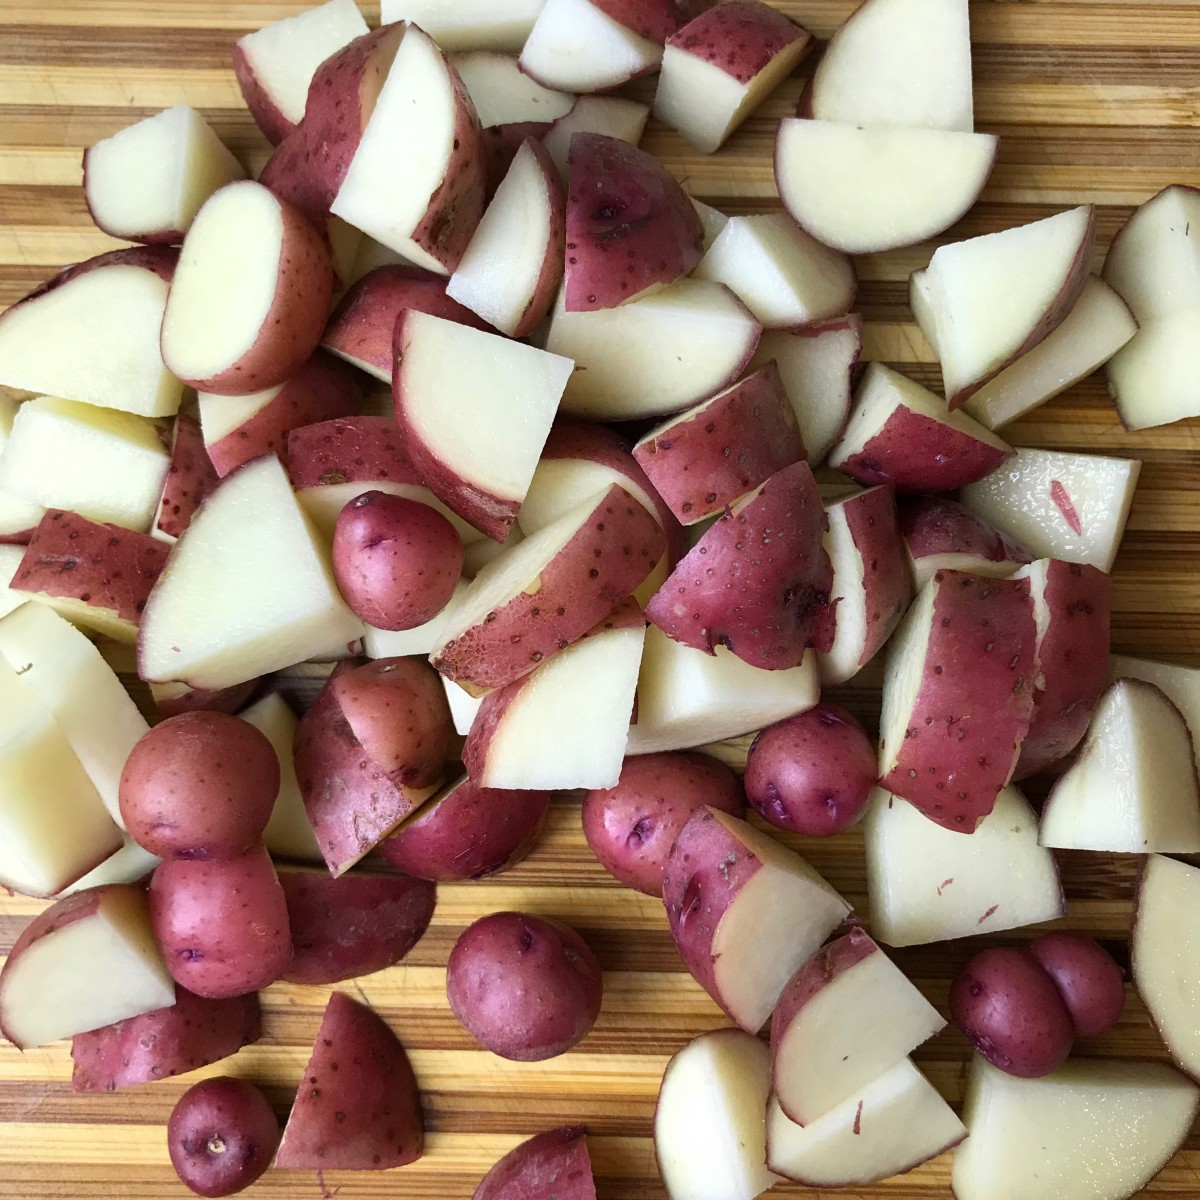 Quarter the potatoes and cut into medium bite-sized pieces. If you have teeny-tiny potatoes like I did, you can leave them whole.